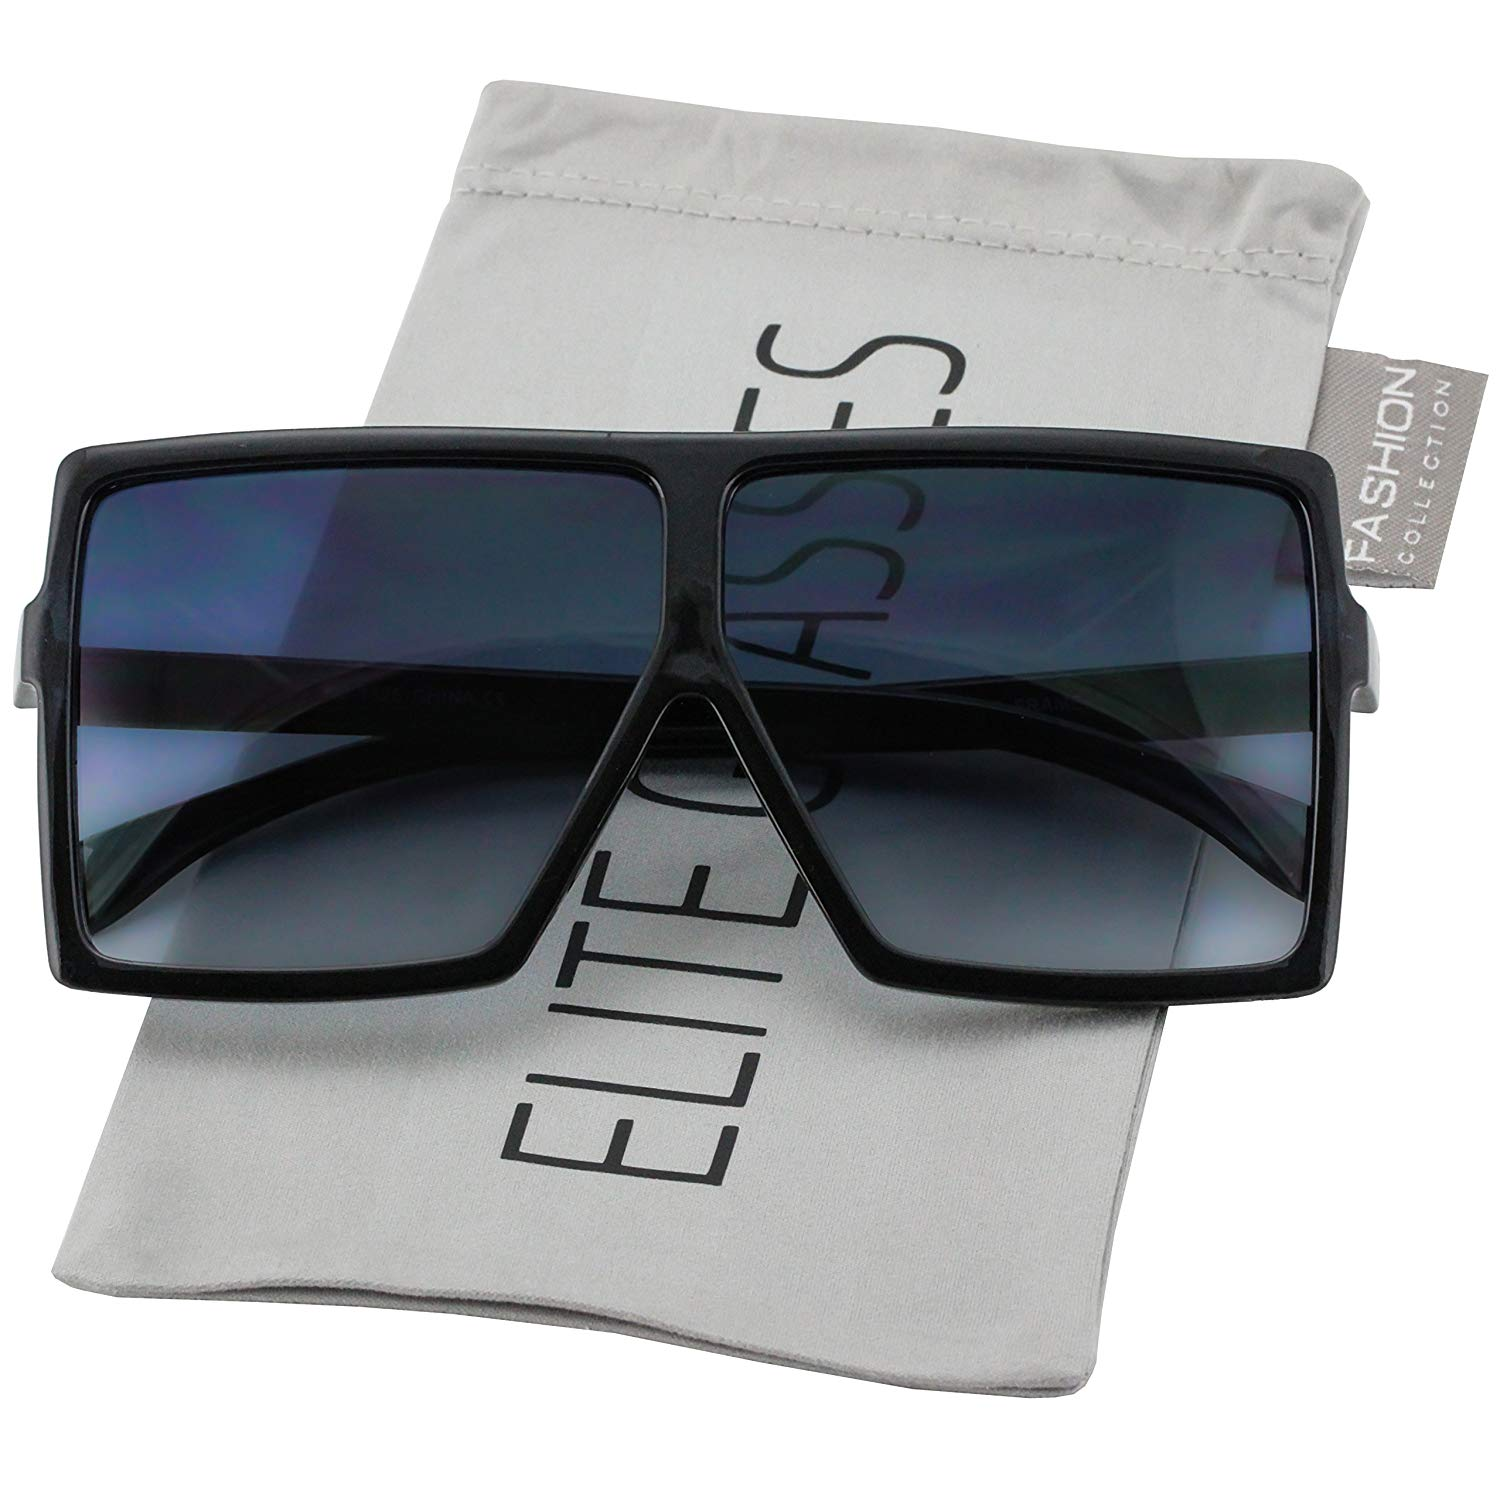 0ac55613b8a9 Get Quotations · Oversized Exaggerated Flat Top Huge SHIELD Square  Sunglasses Colorful Lenses Fashion Sunglasses